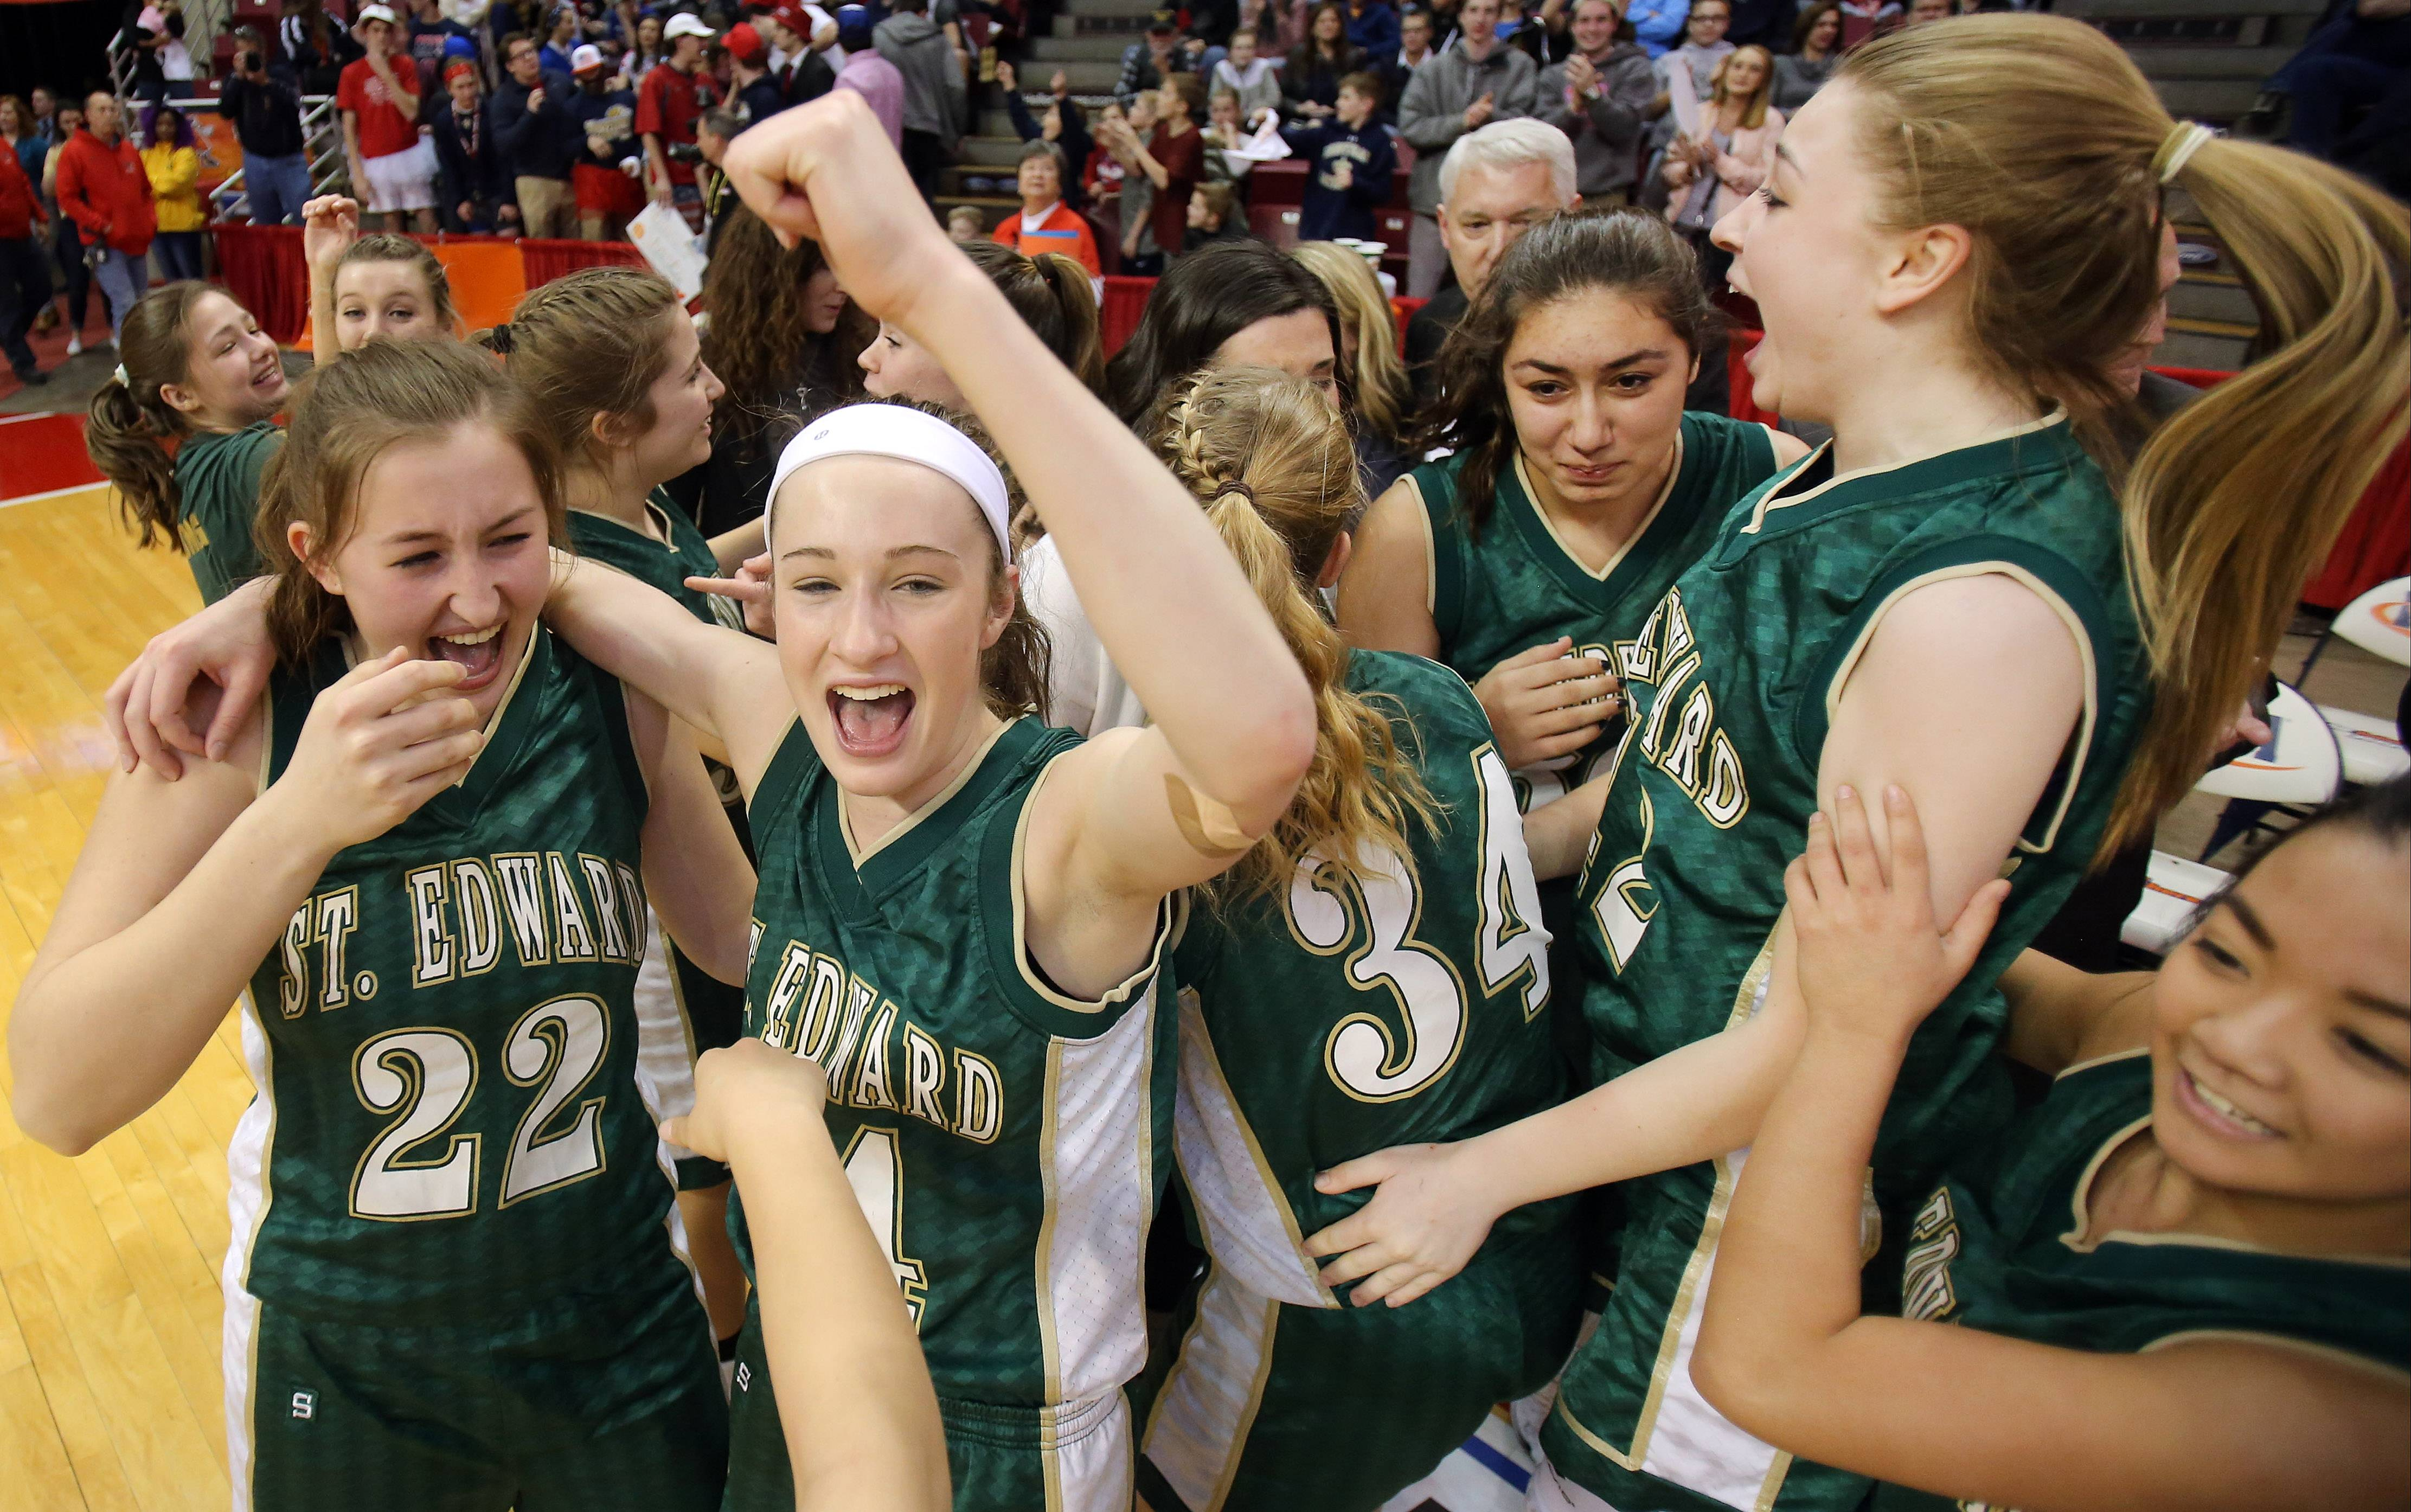 St. Edward's girls celebrate their 47-42 win over Camp Point Central in the Class 2A girls basketball third place state tournament game Saturday in Normal.